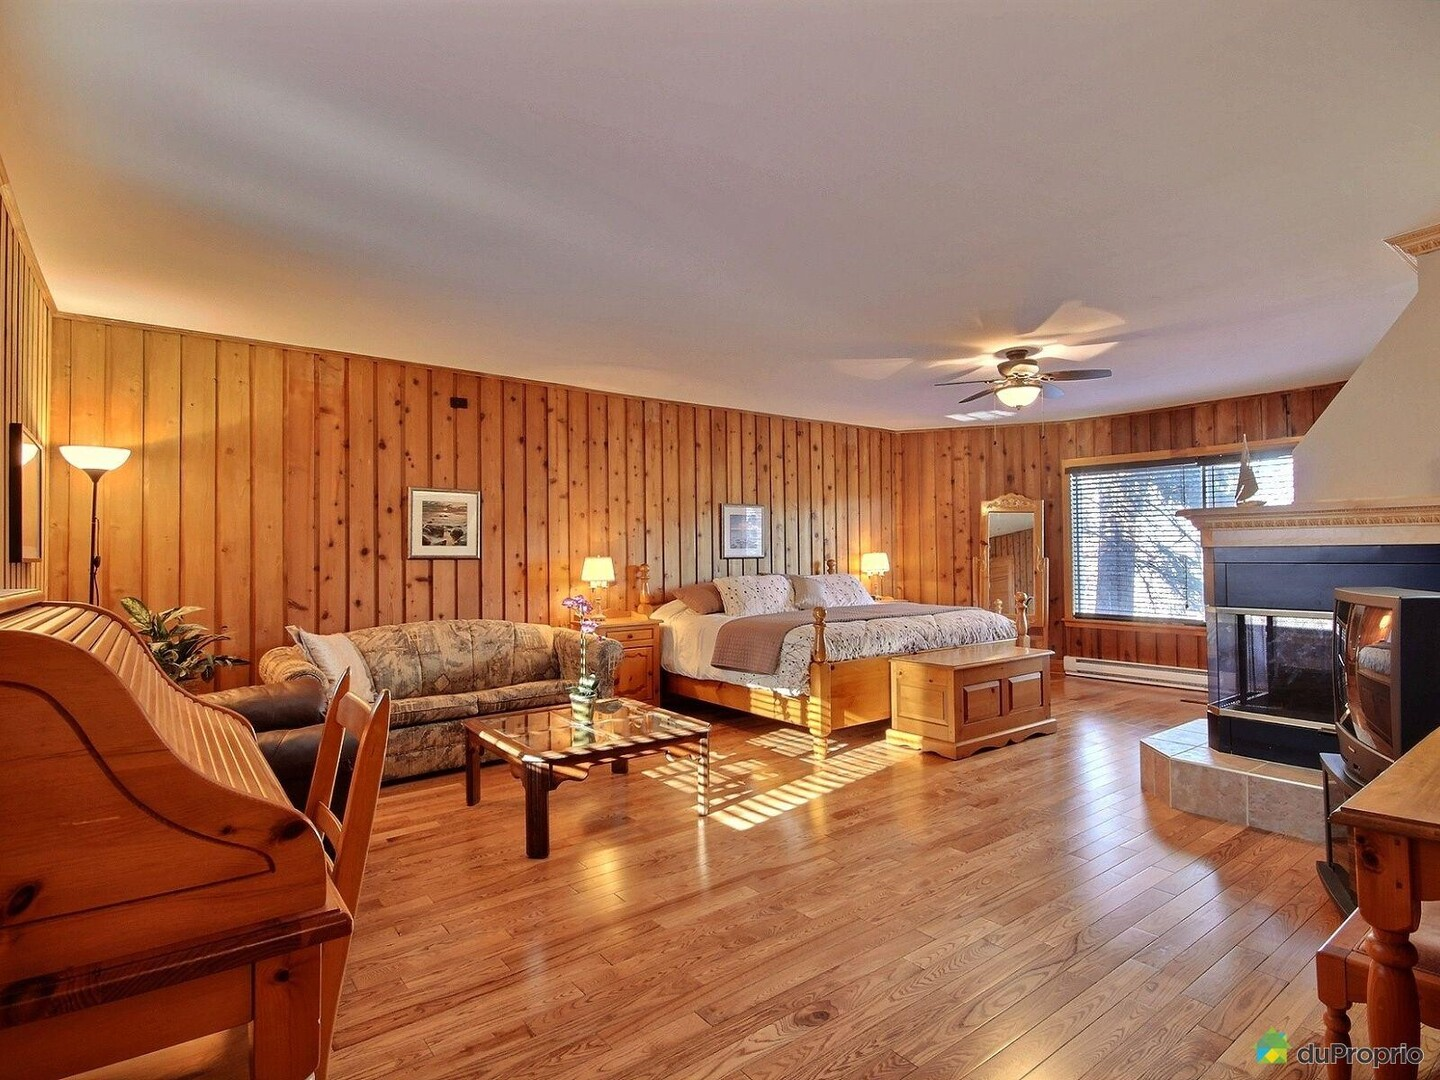 Location du chalet le chalet de la corniche piedmont for Chambre de commerce laurentides